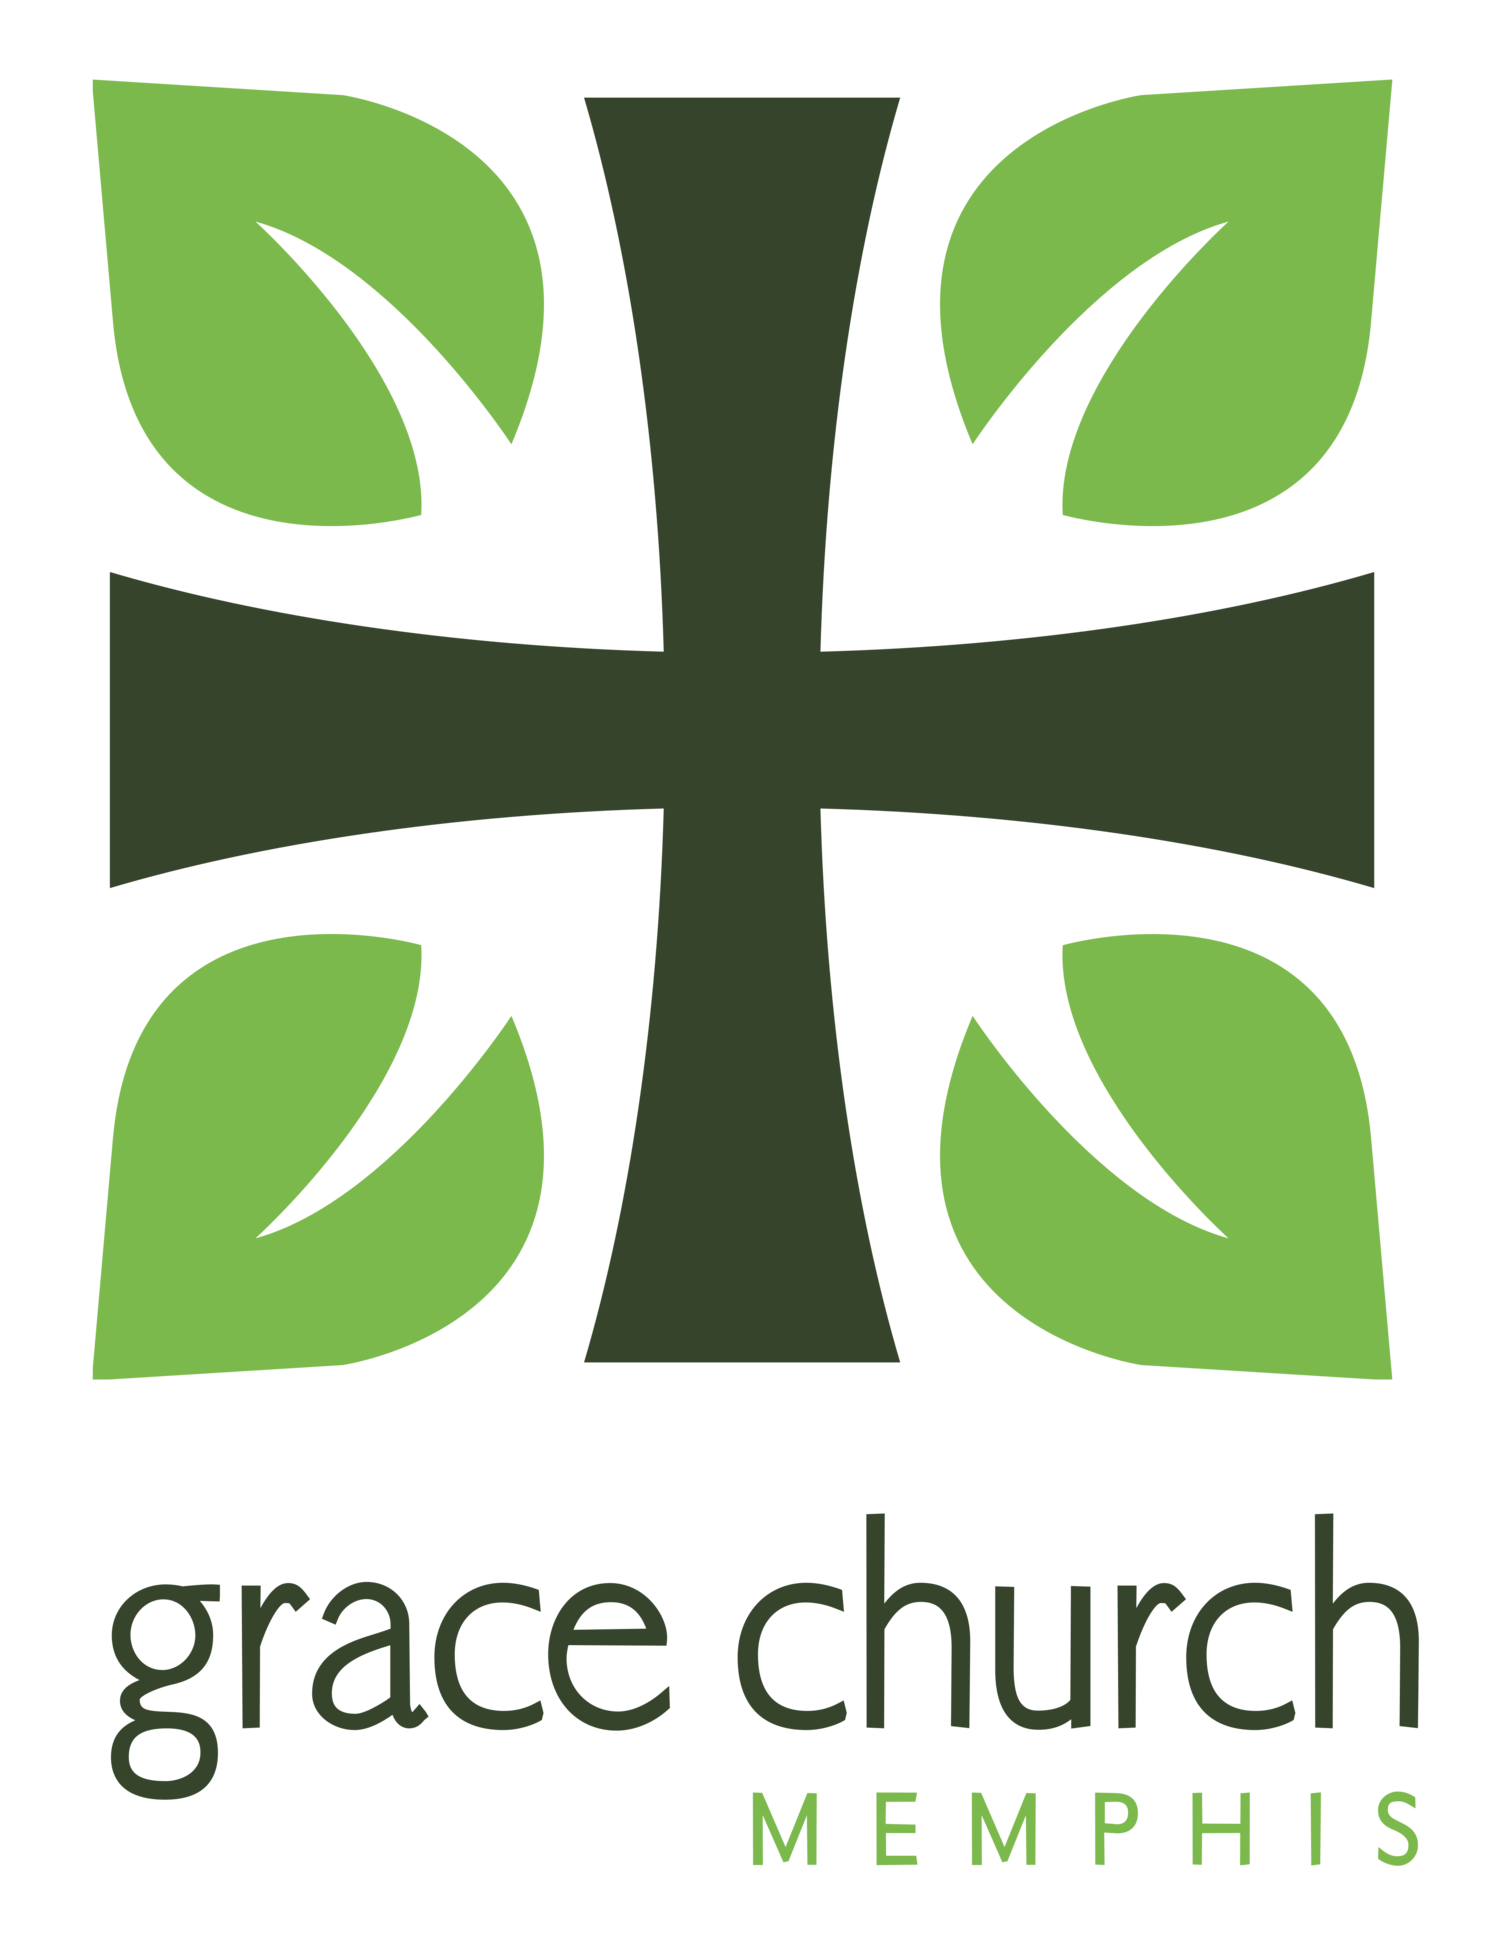 Grace Church Memphis